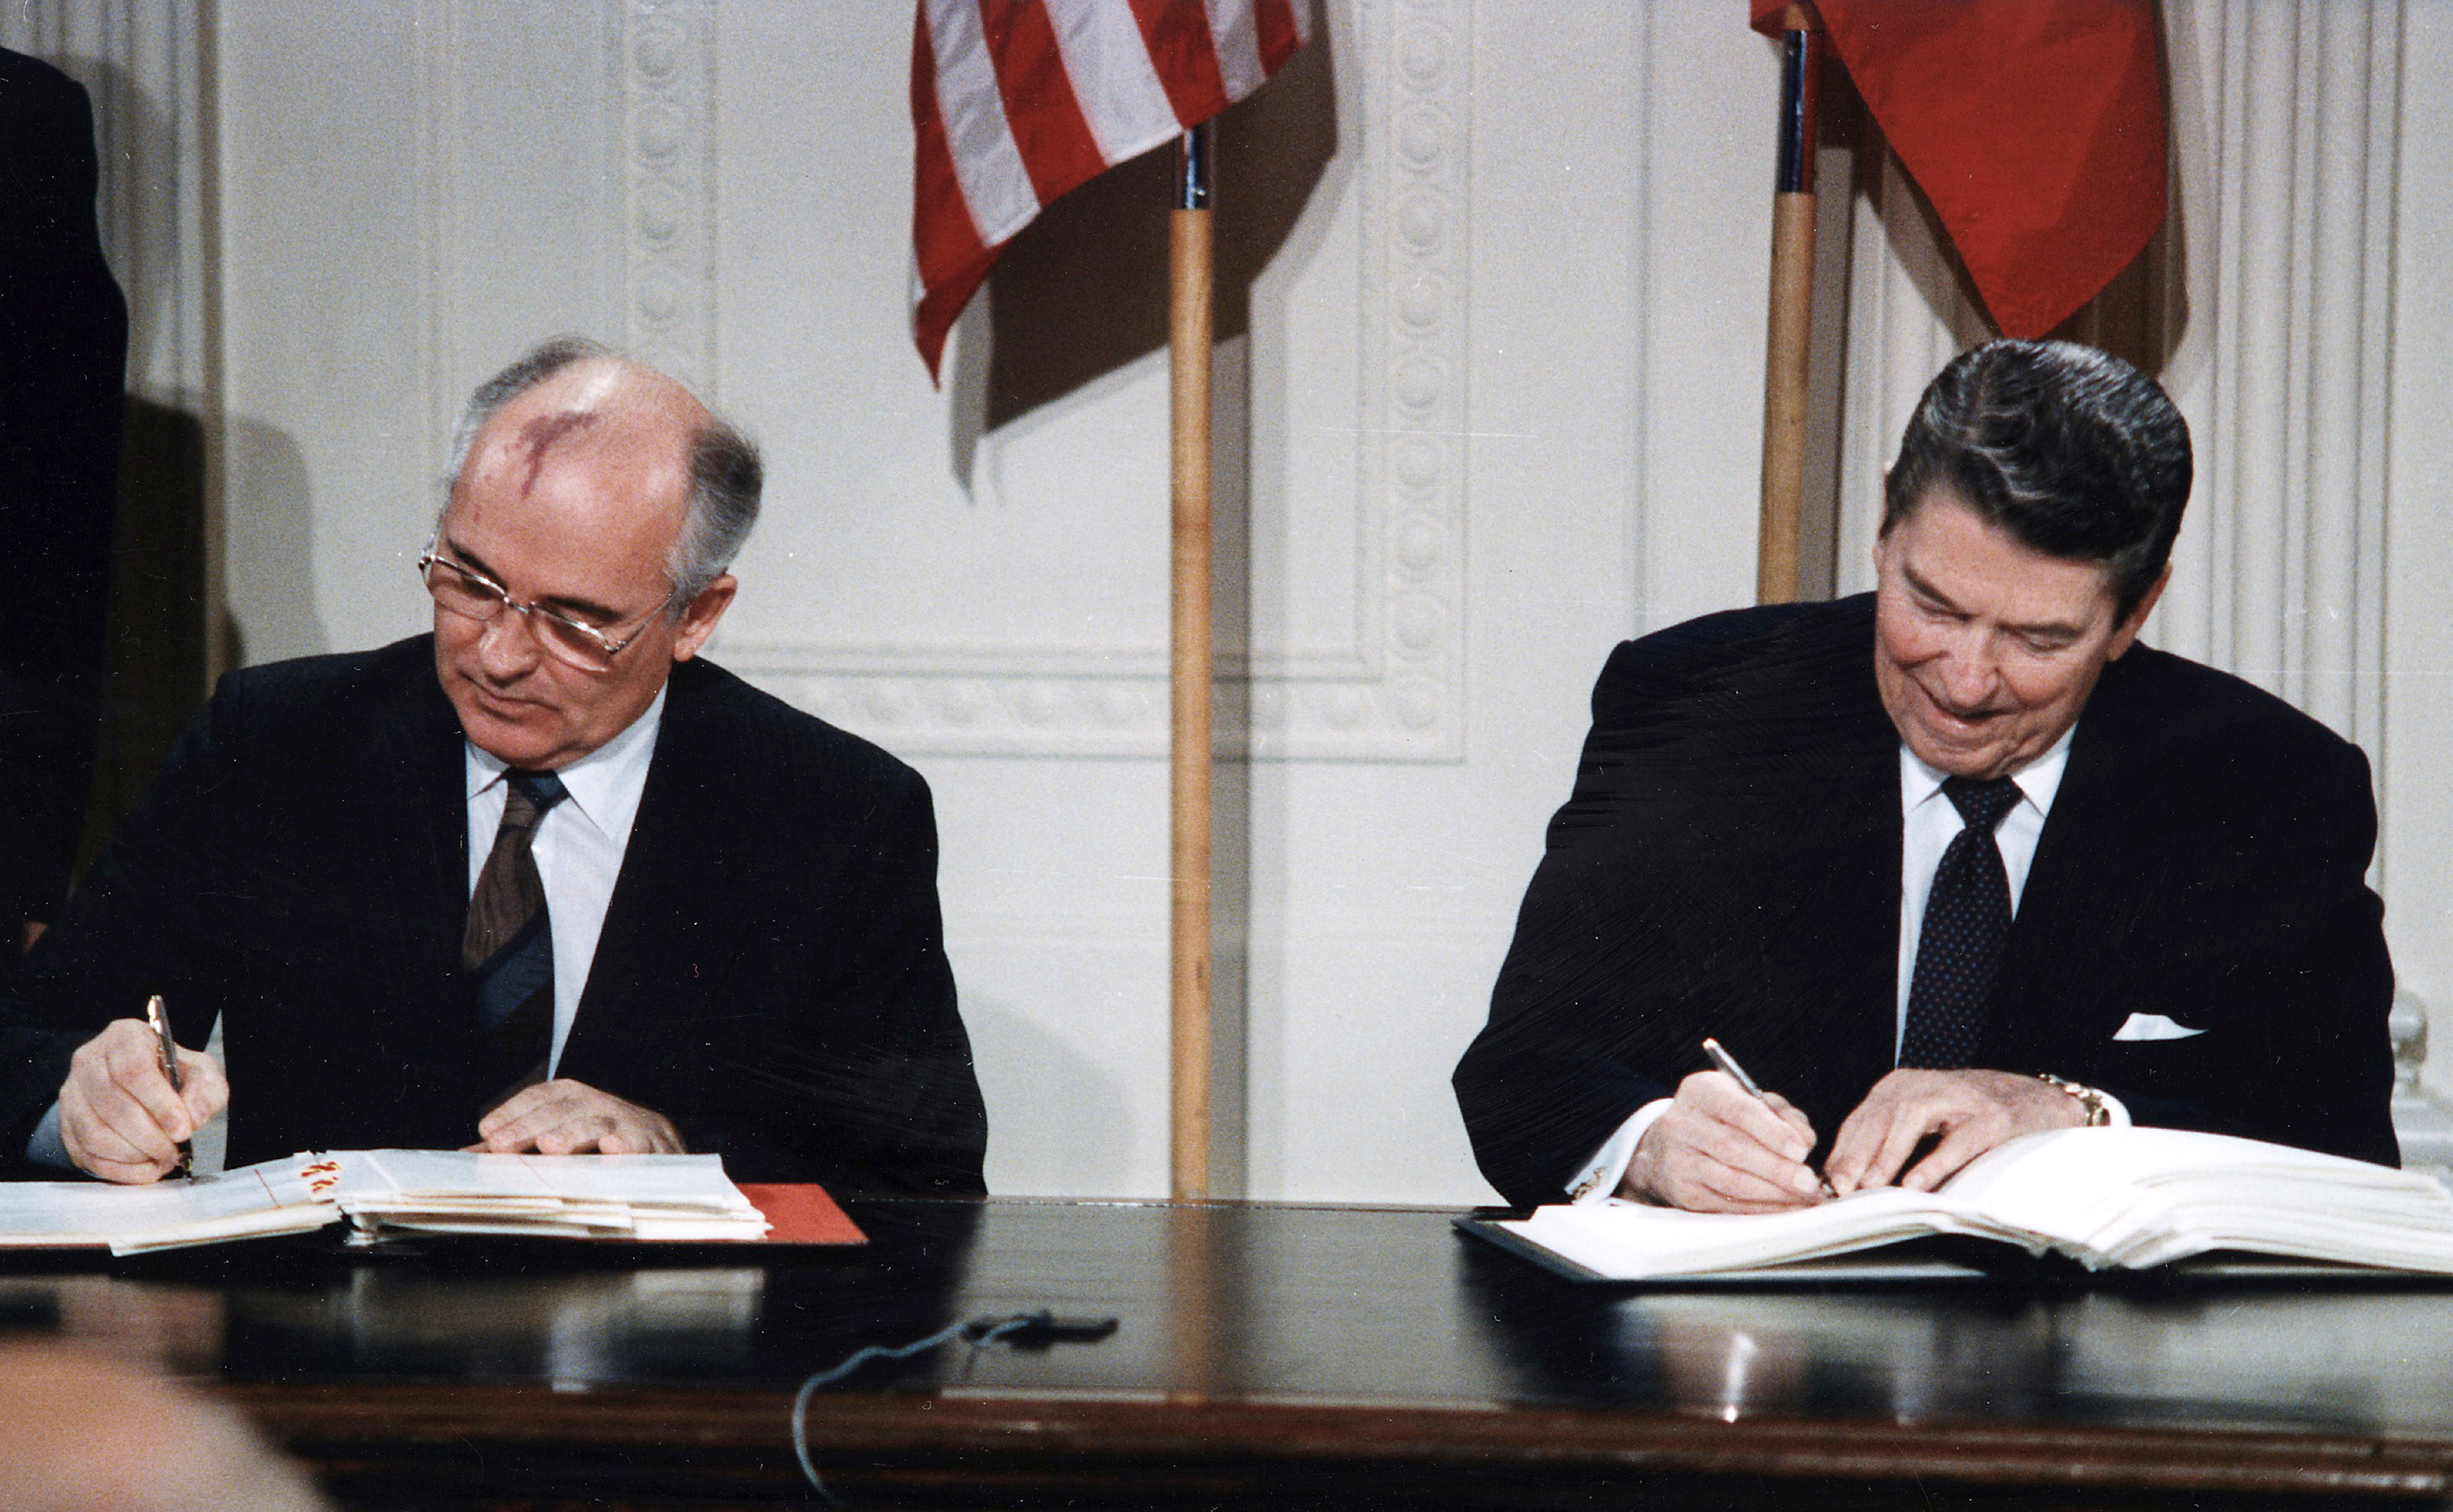 Mikhail Gorbachev and Ronald Reagan sign the INF Treaty at the White House, 1987